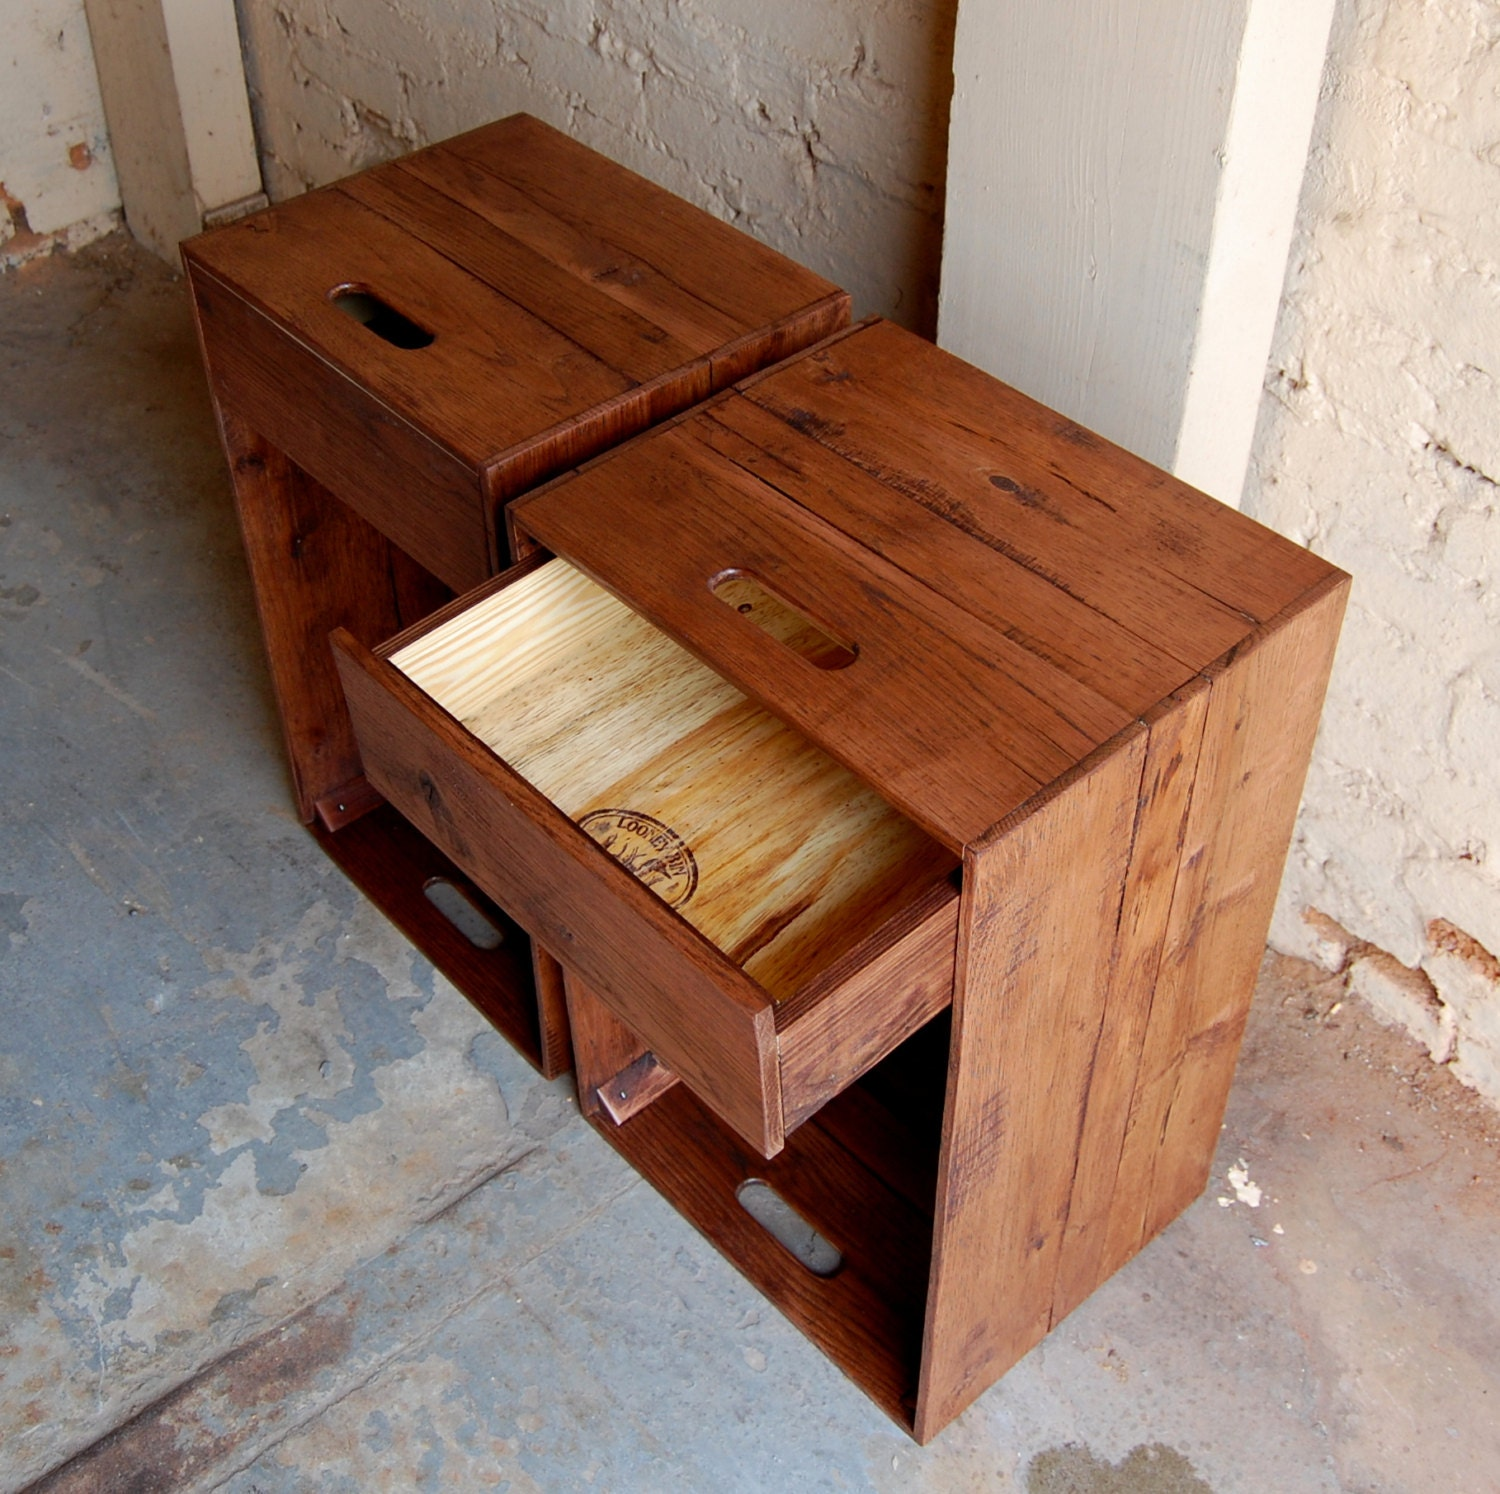 Pair of wooden crates nightstands side tables drawers